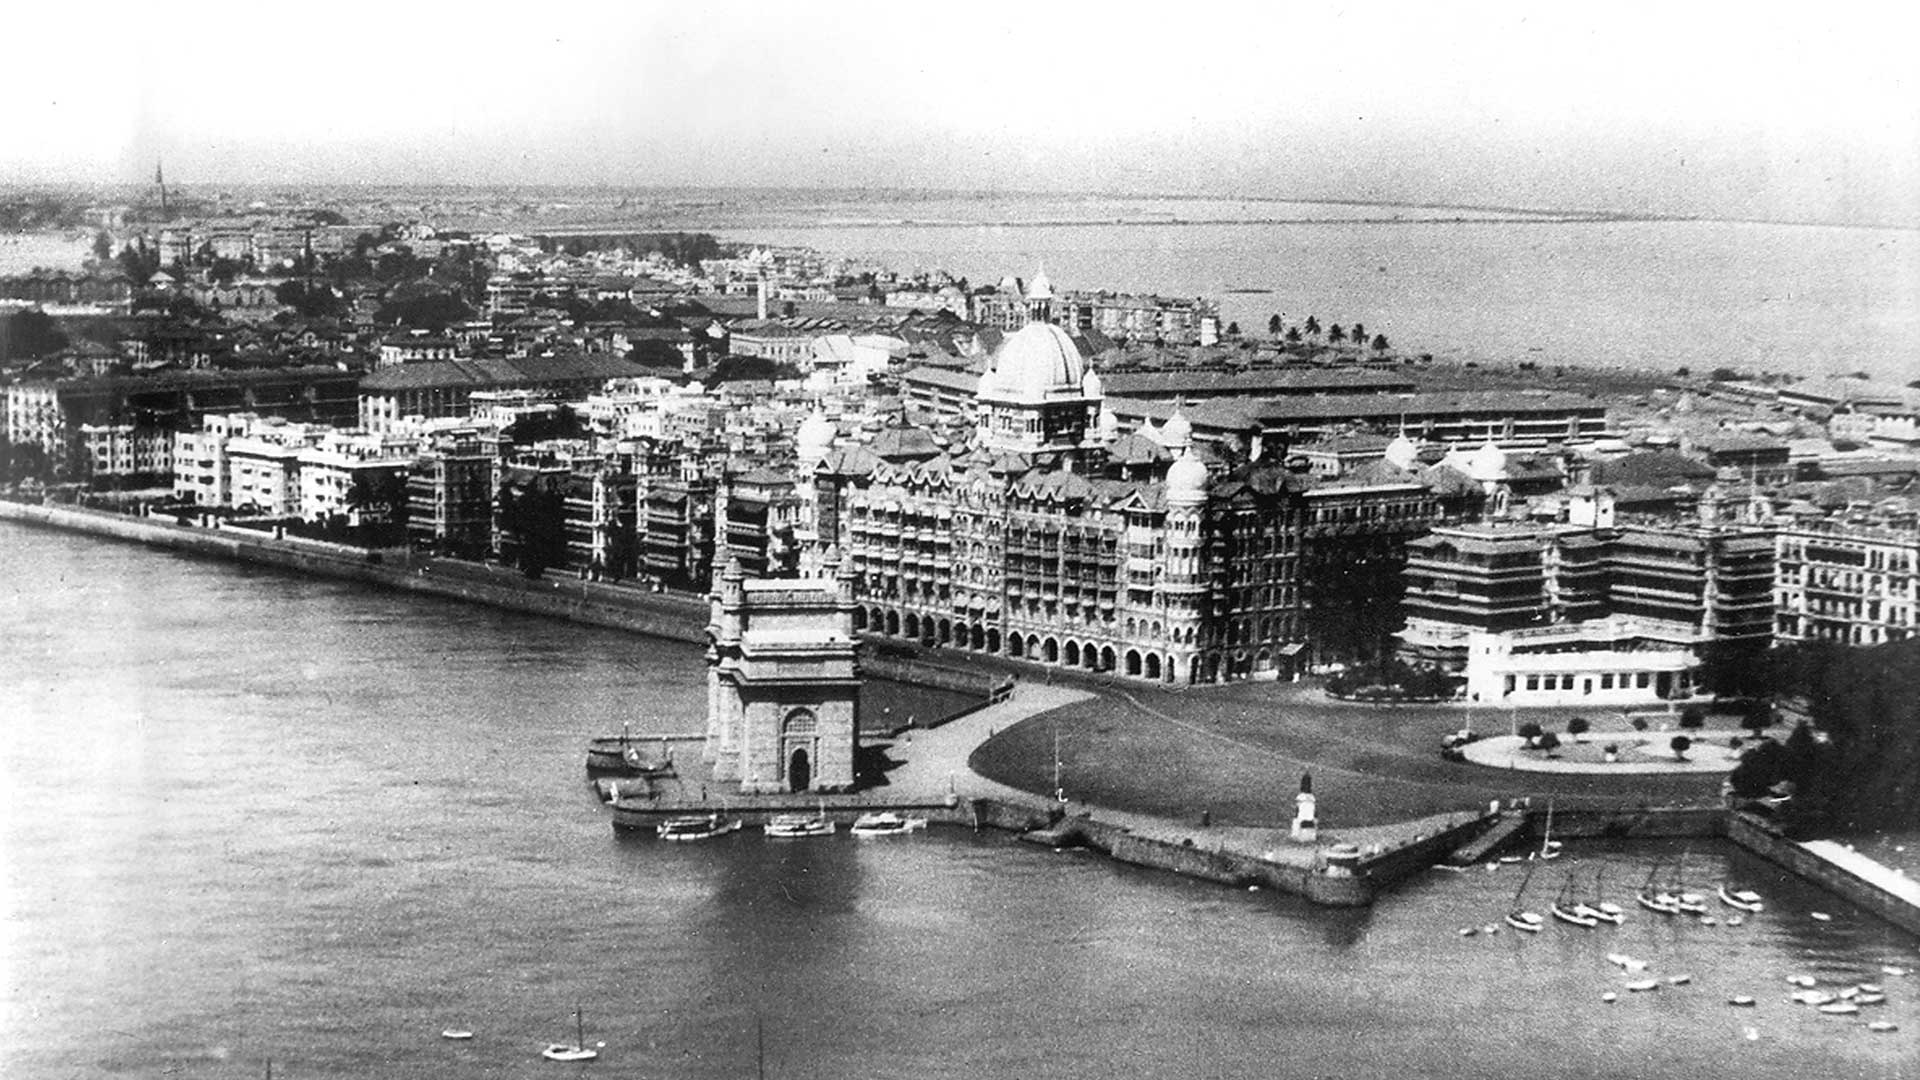 The Taj Mahal Palace was Mumbai's first harbour landmark